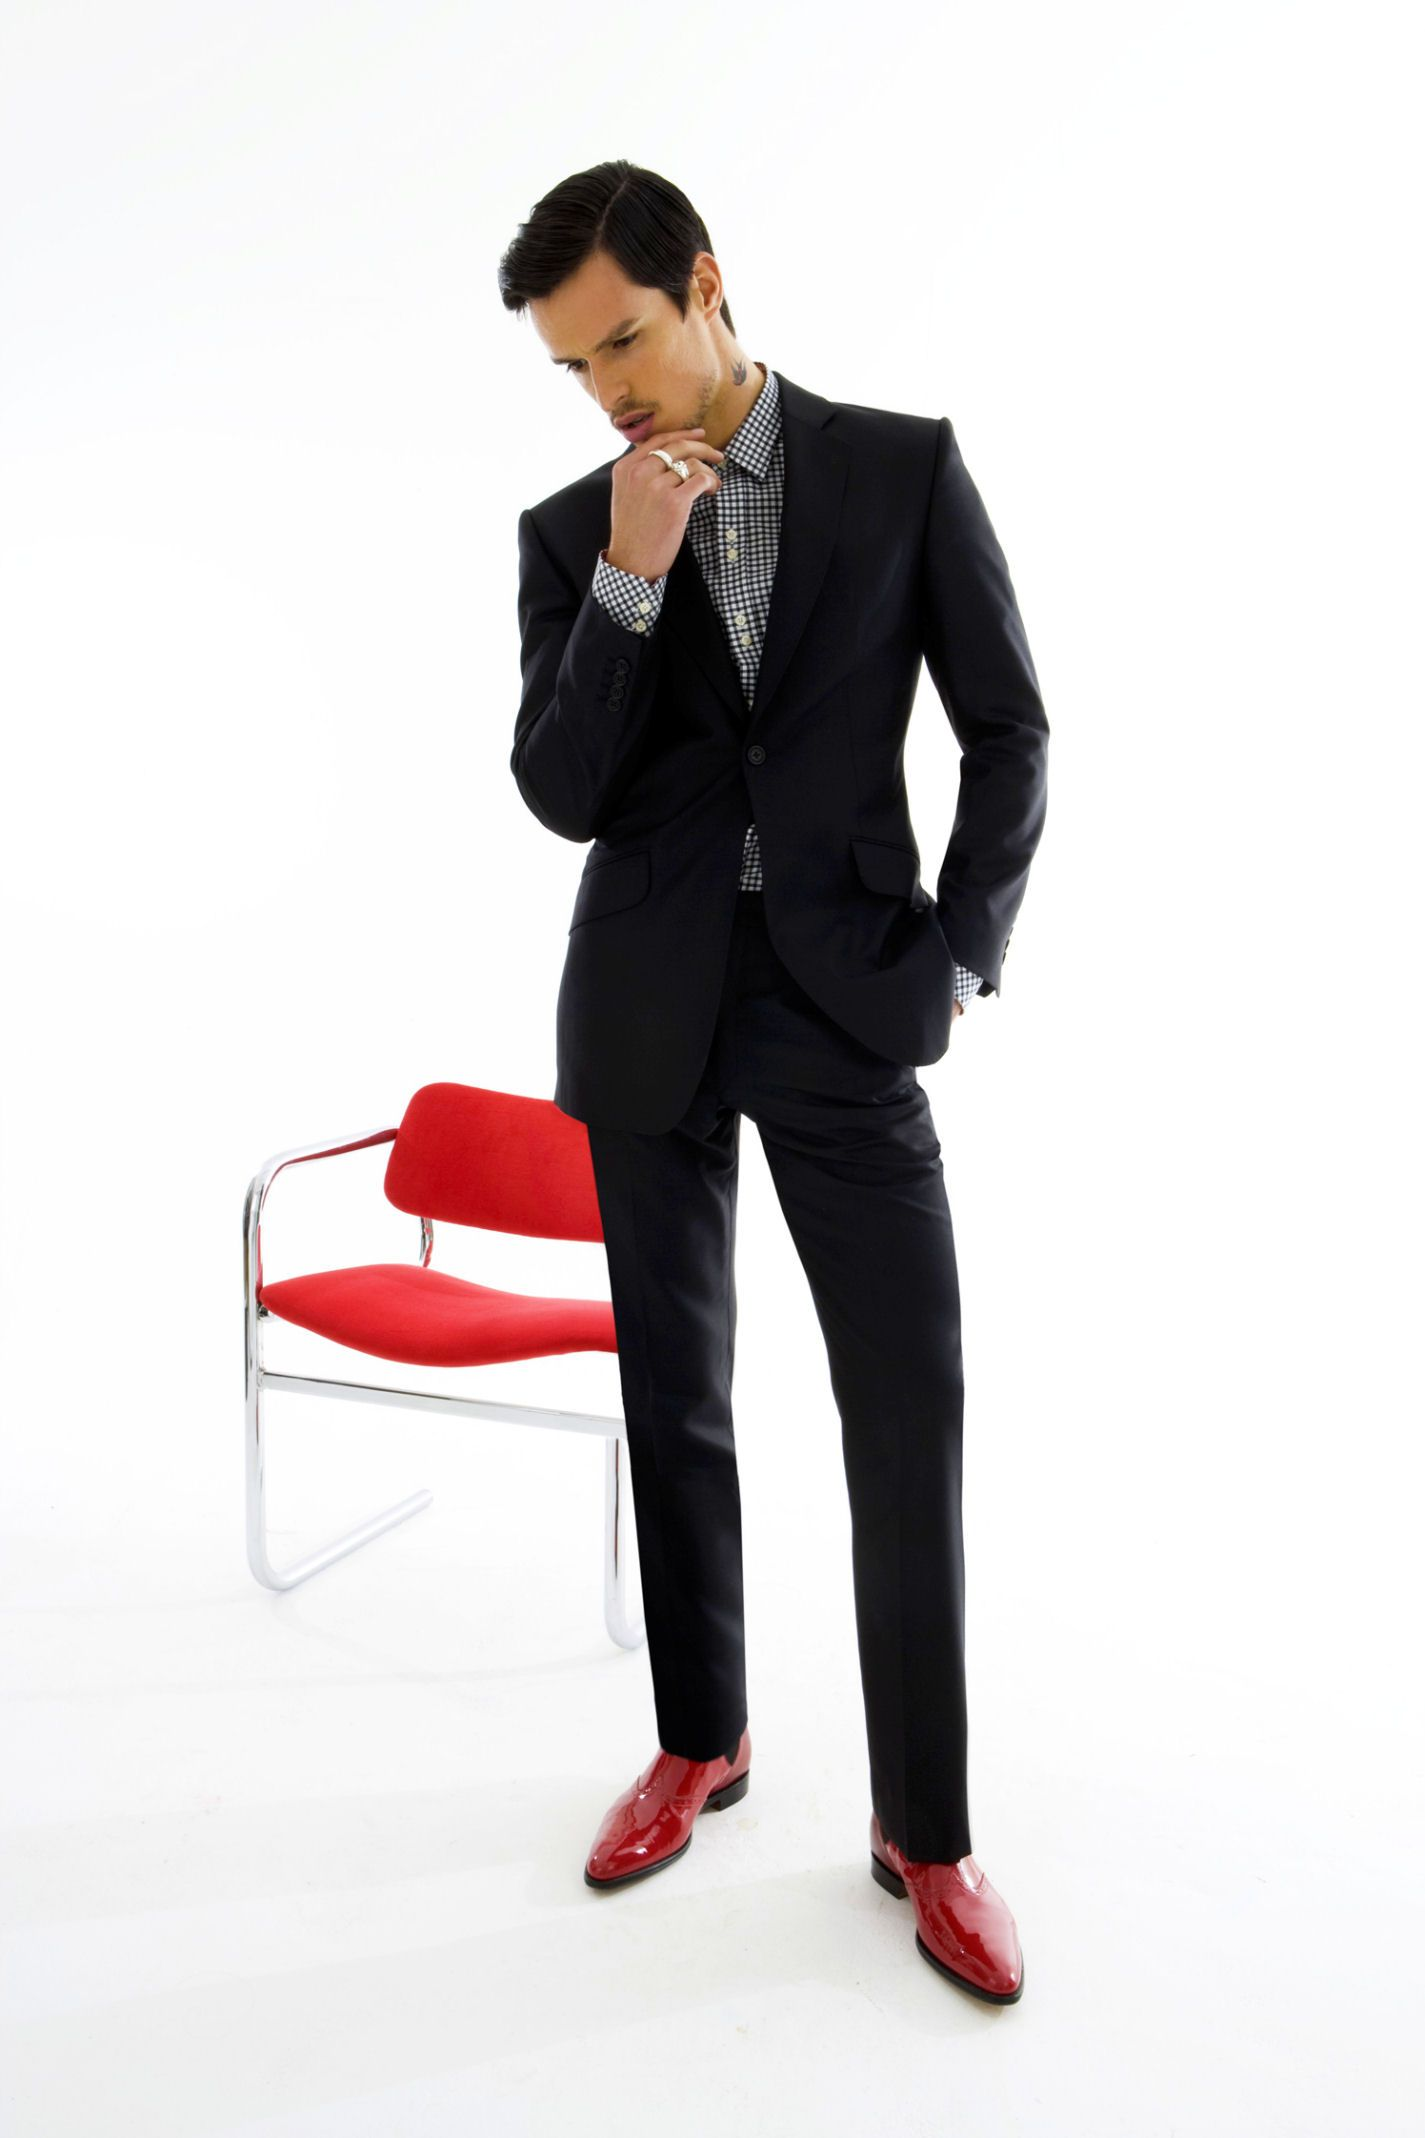 Suit with red shoes